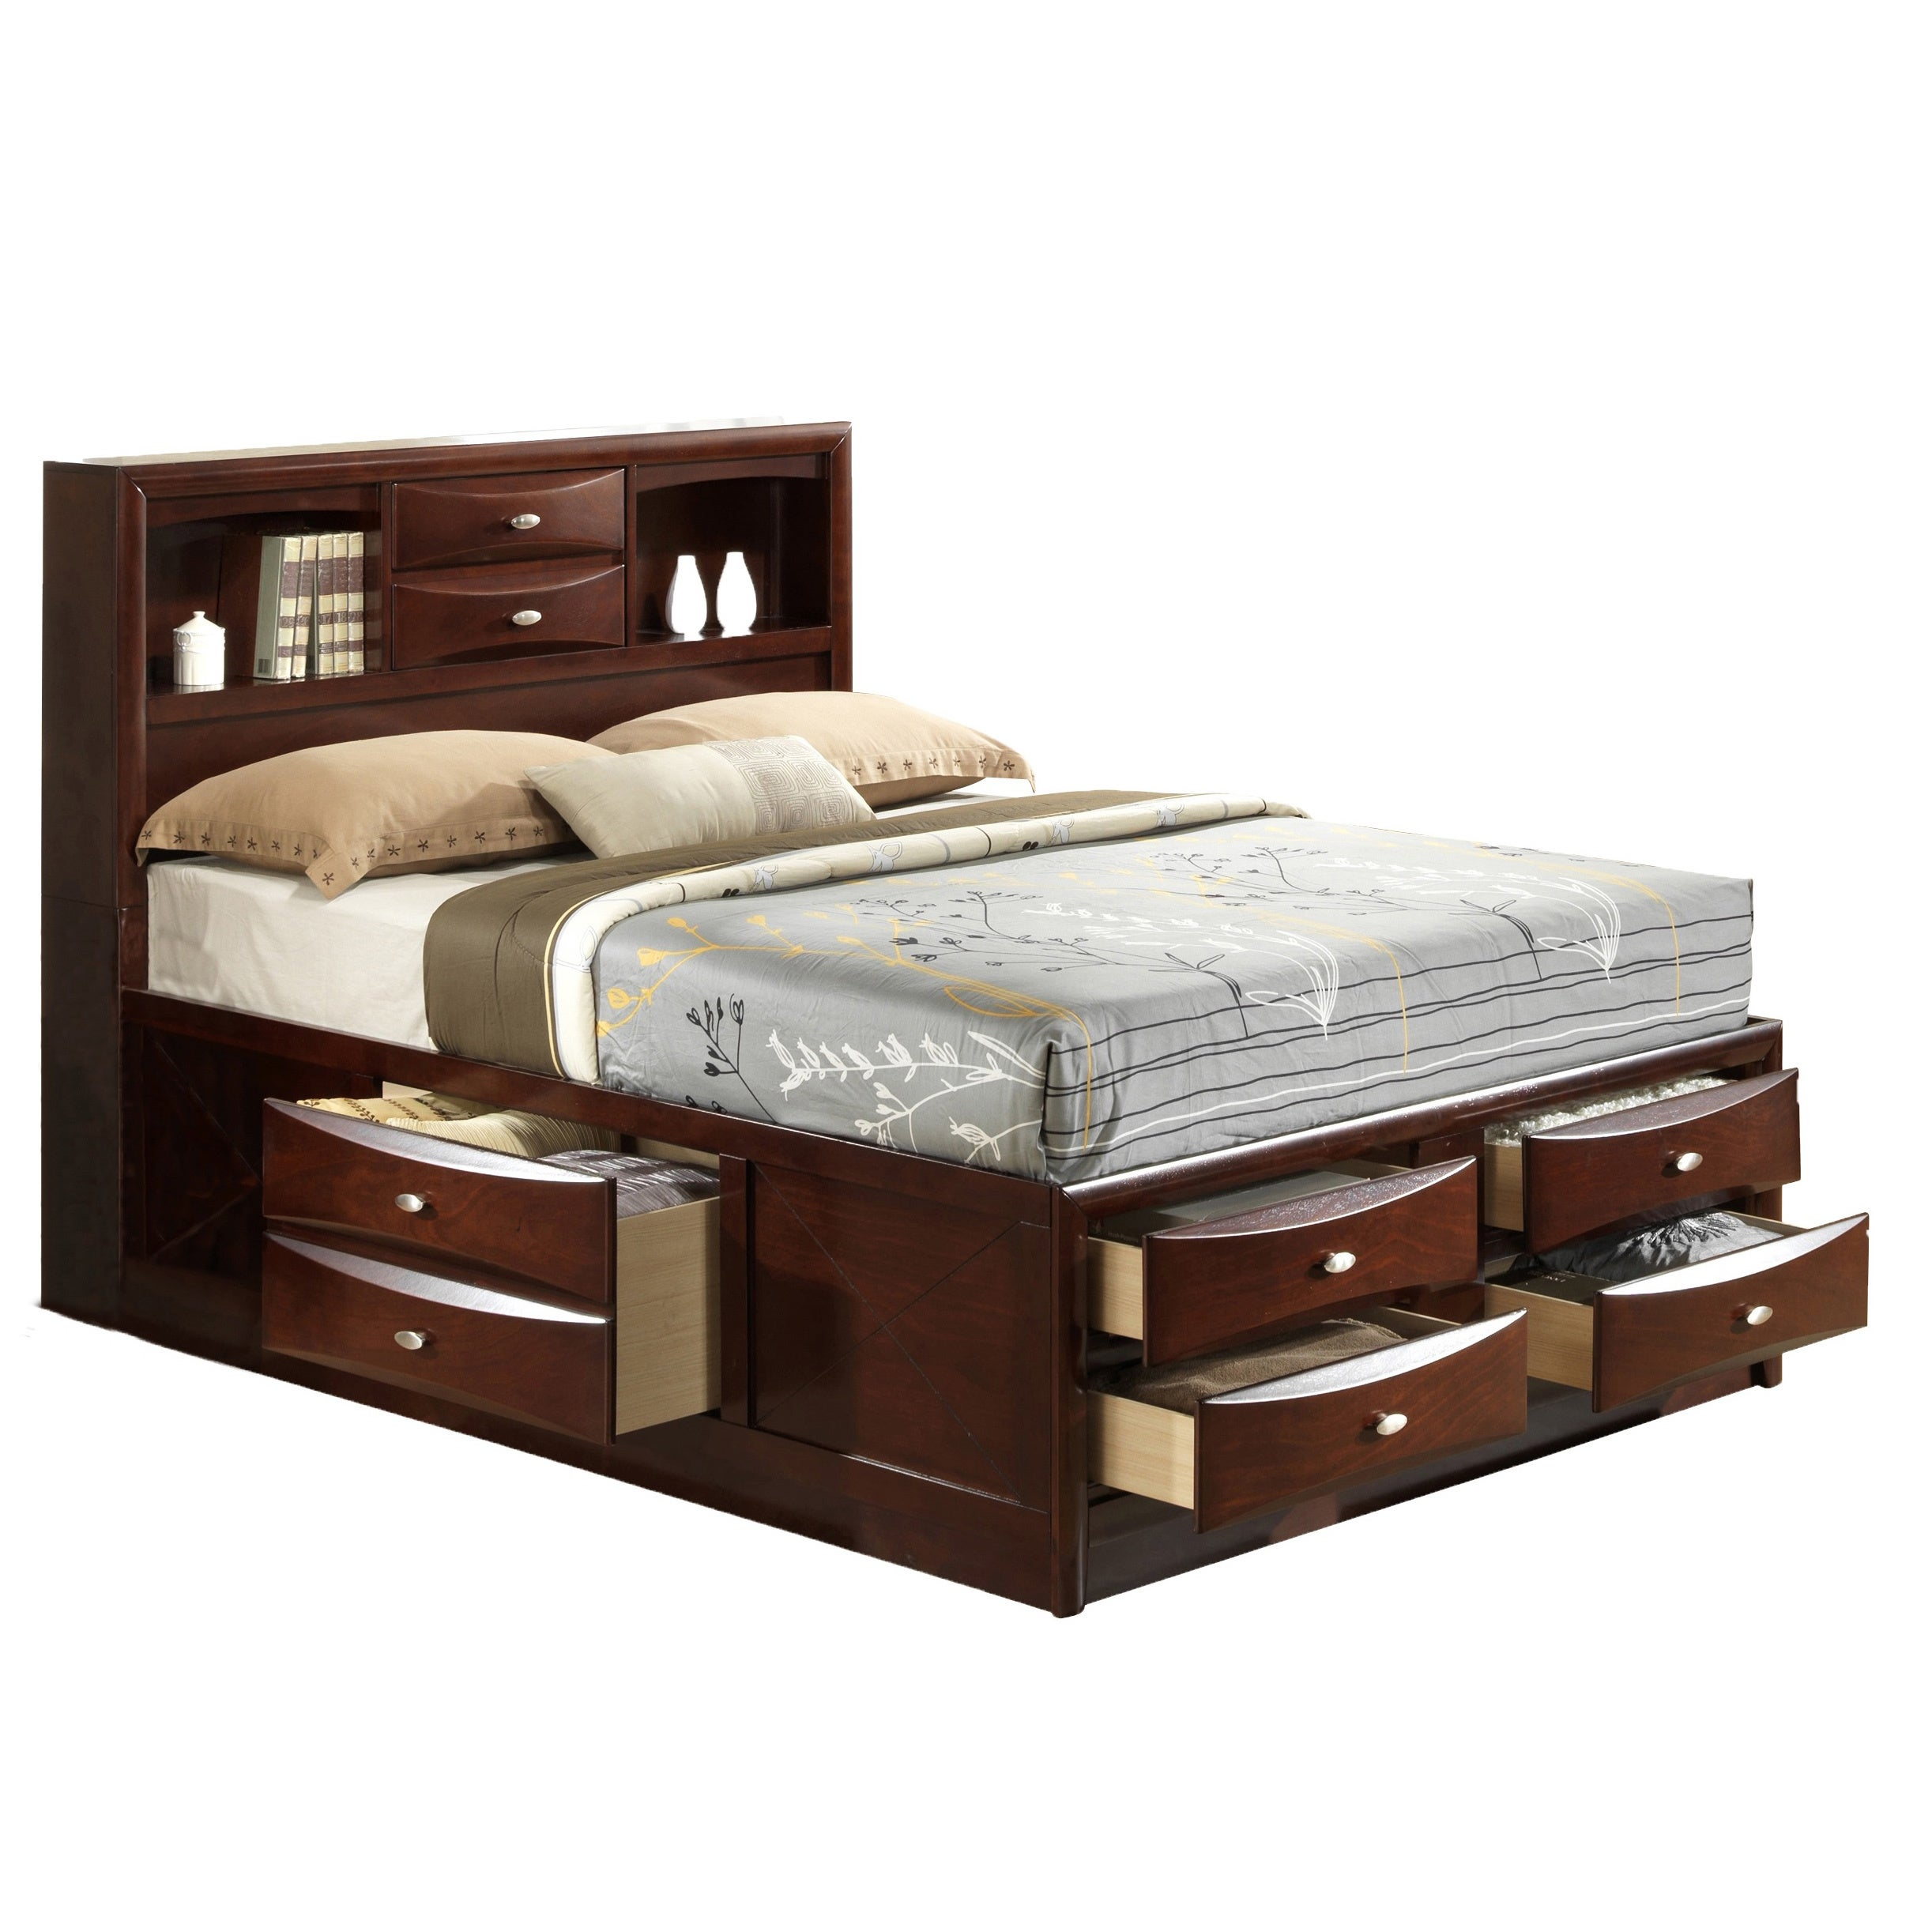 trim daniel lewiston drawers products height storage bed beds amish queen width furniture belfort with lewistonqueen item threshold s